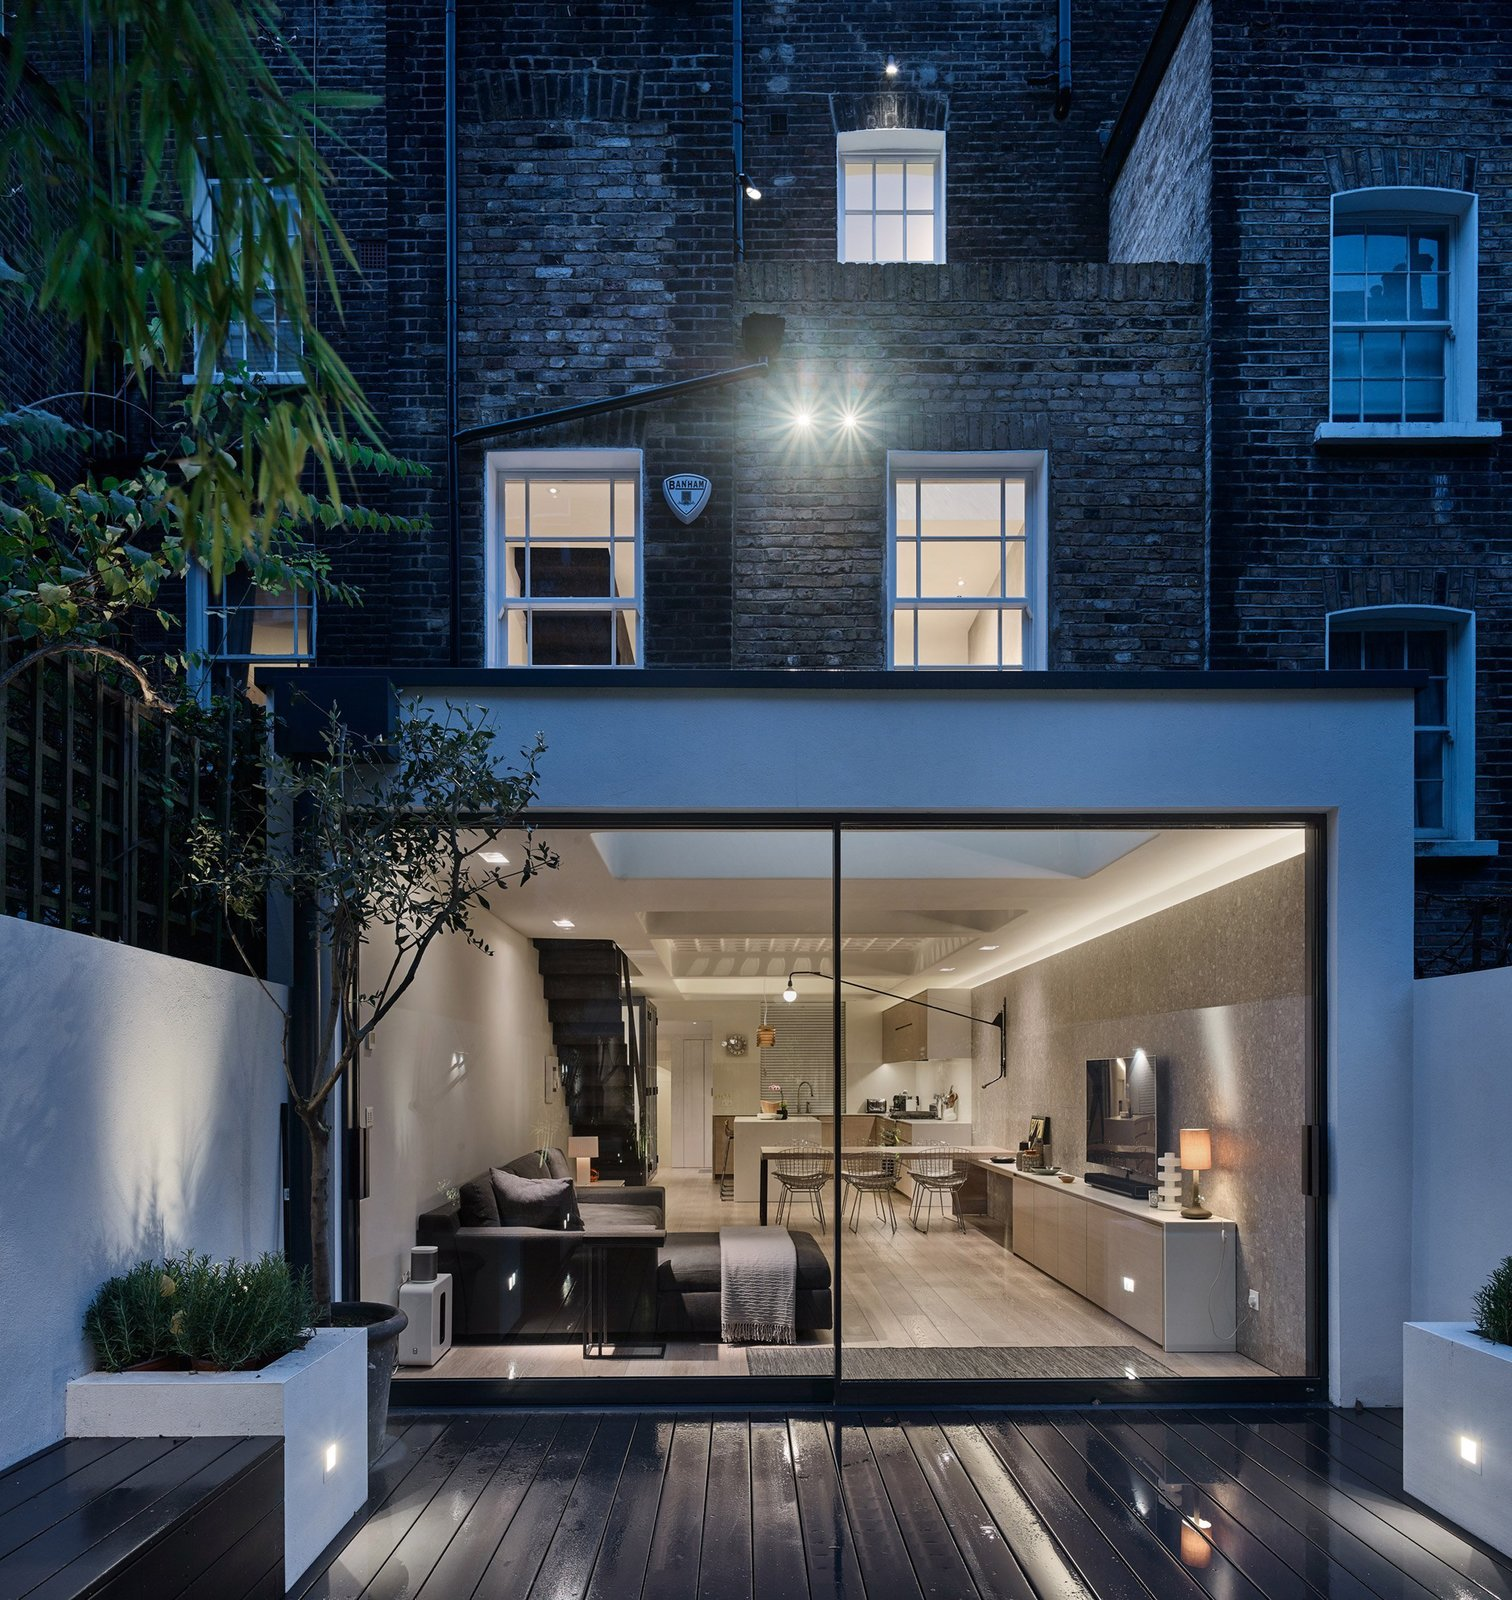 Outdoor, Small Patio, Porch, Deck, and Wood Patio, Porch, Deck  Best Photos from Transparent Perforated Circles Bring Light and Movement to This London Terrace House